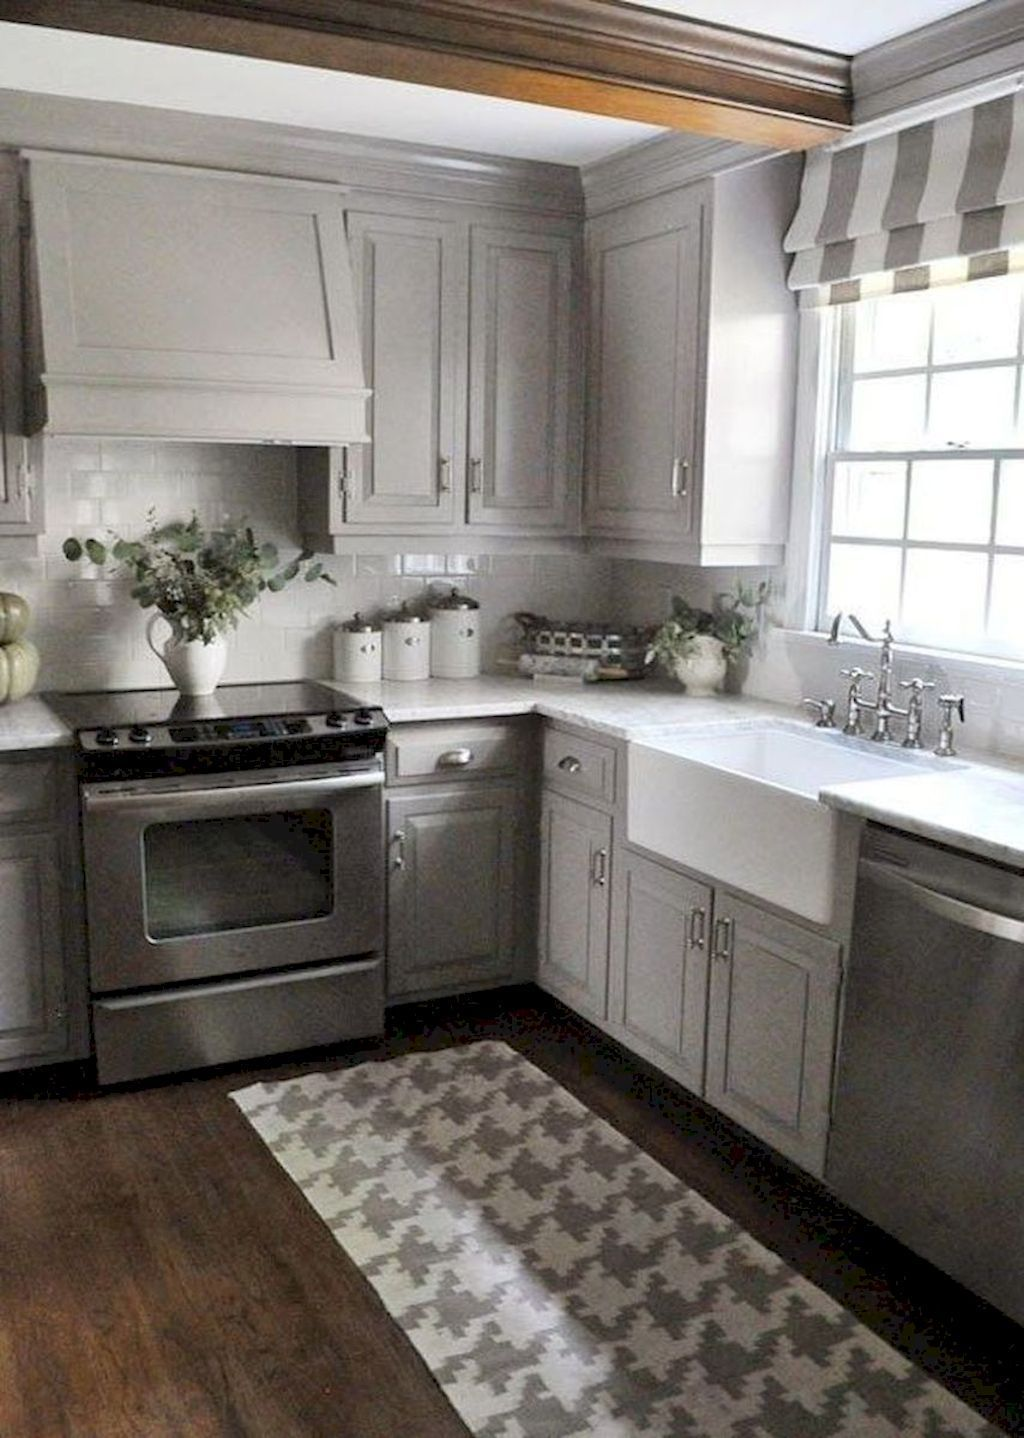 You must see painted kitchen closet suggestions white kitchen